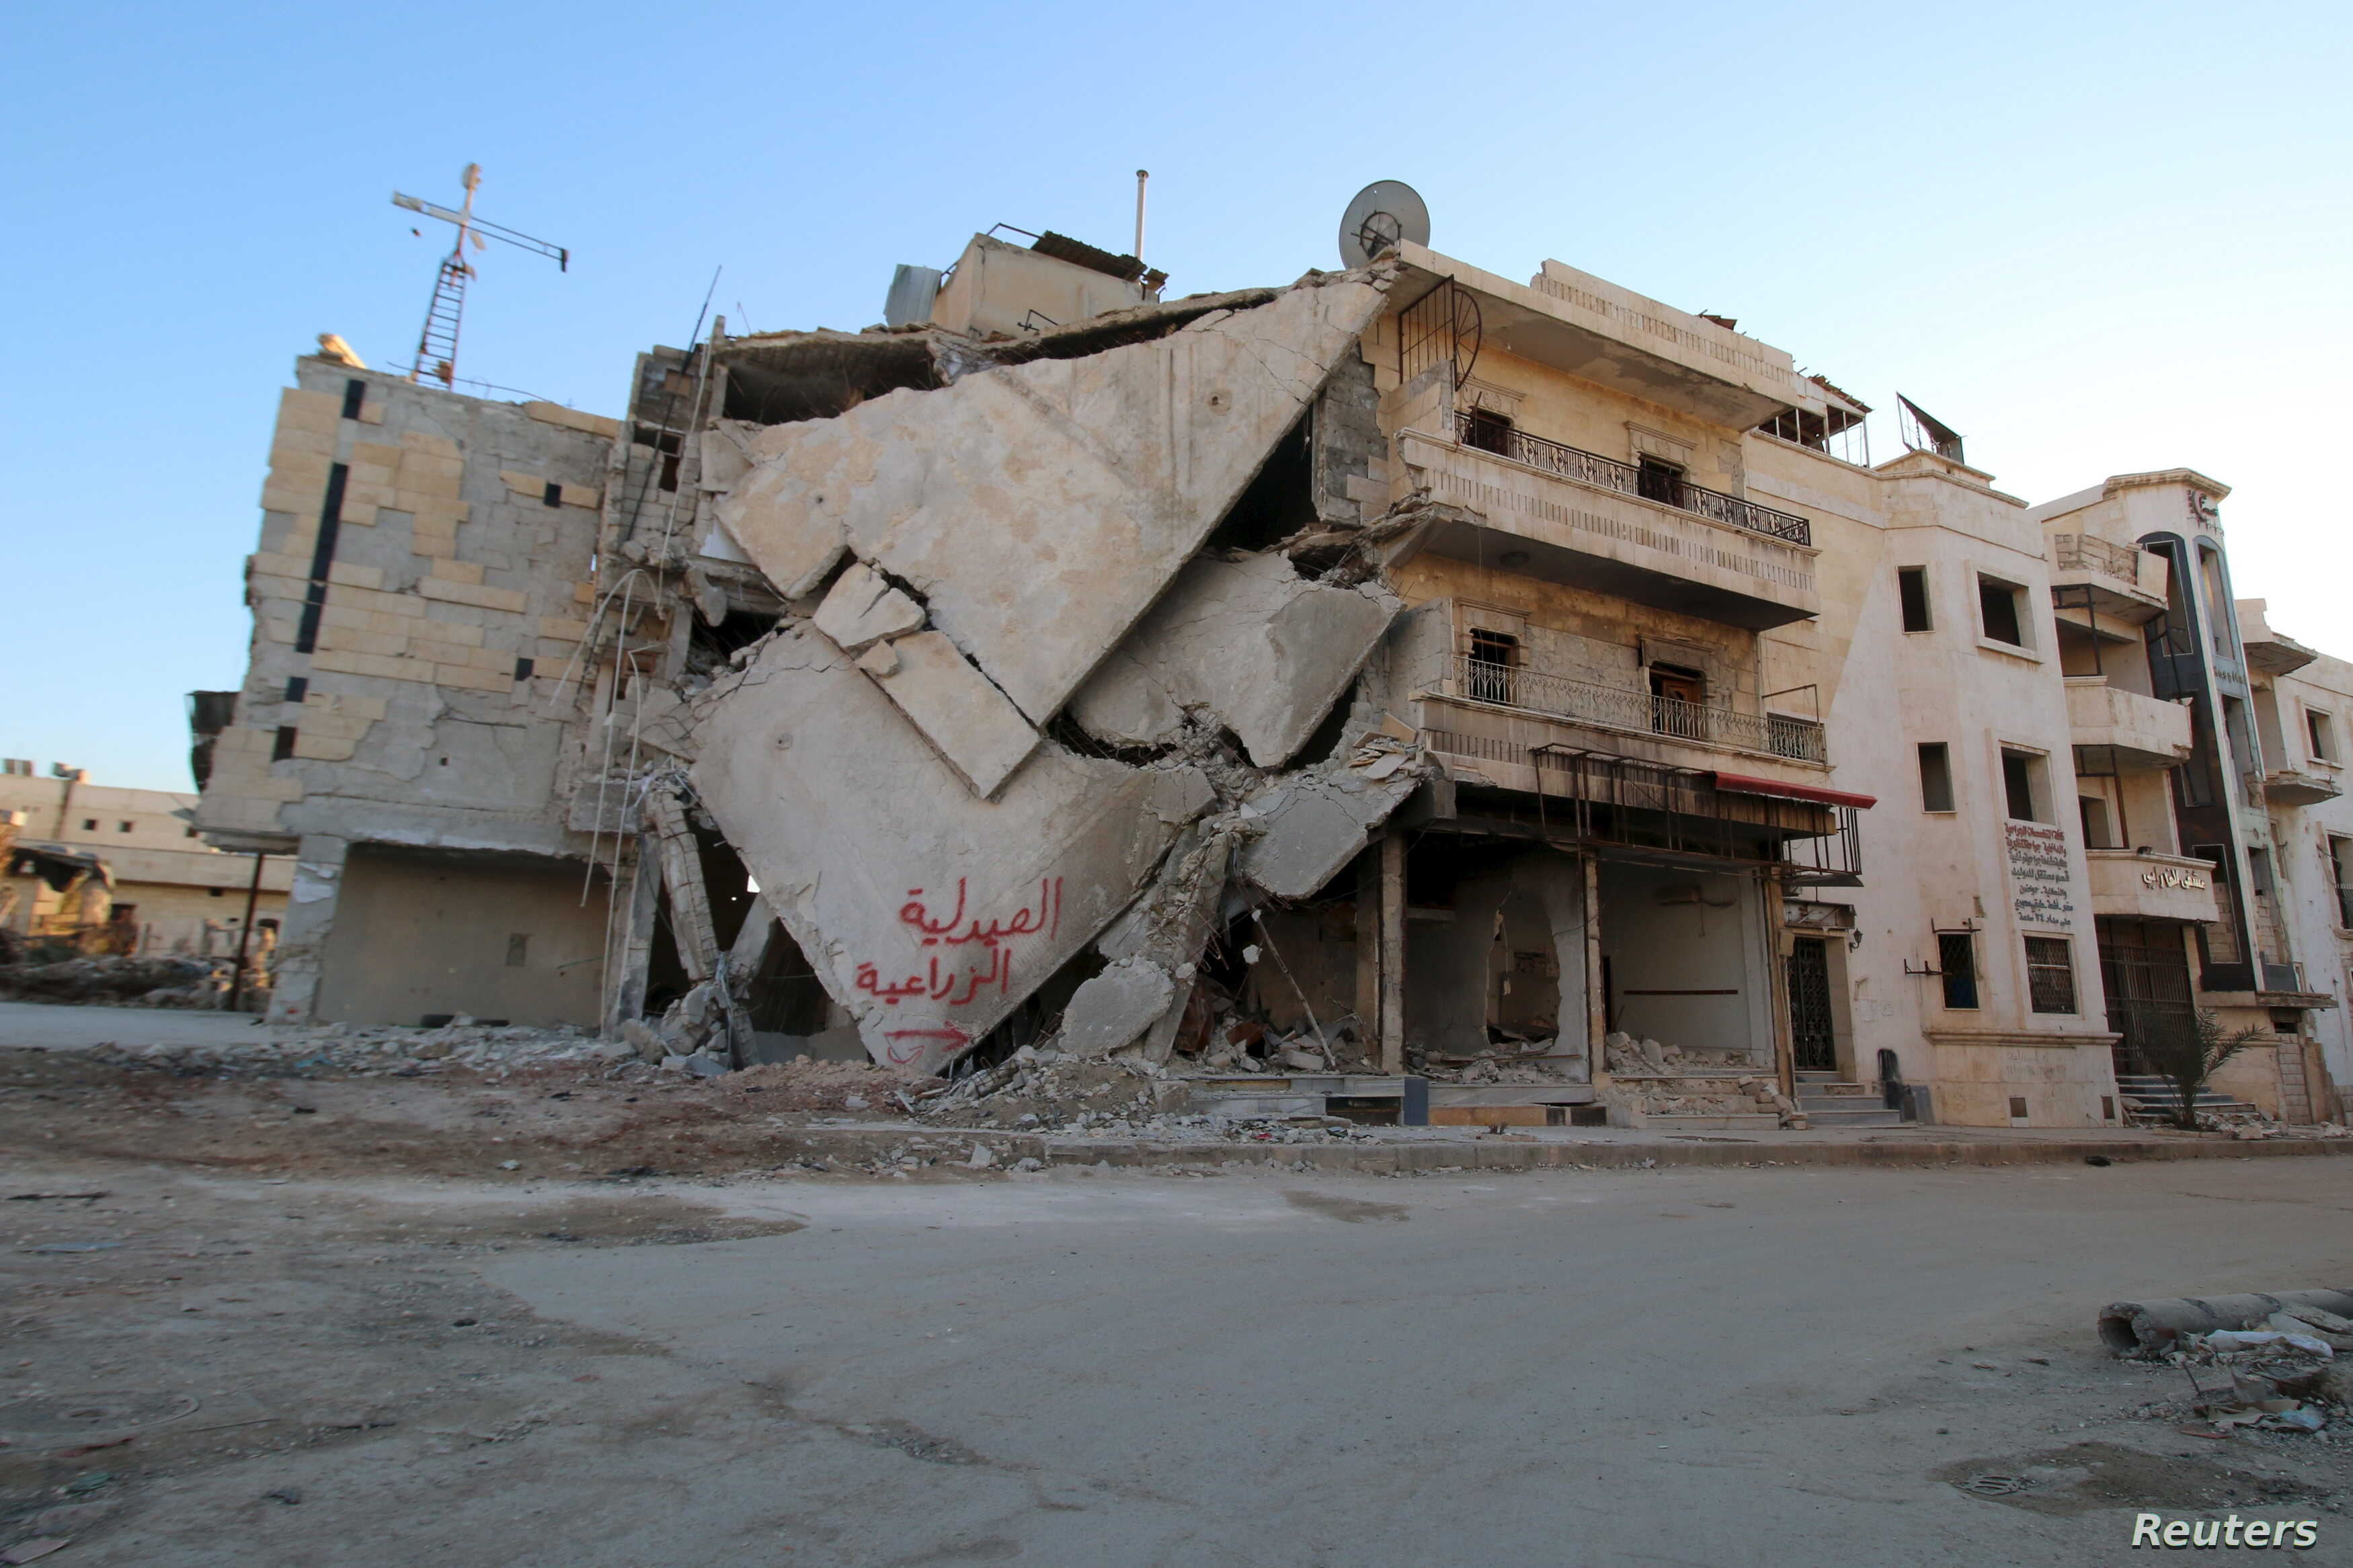 "A damaged building is seen in Hraytan city, about 10 kilometers away from the towns of Nubul and Zahraa, Northern Aleppo countryside, Syria, Feb. 3, 2016. The text on the building reads in Arabic: ""Agricultural pharmacy."""